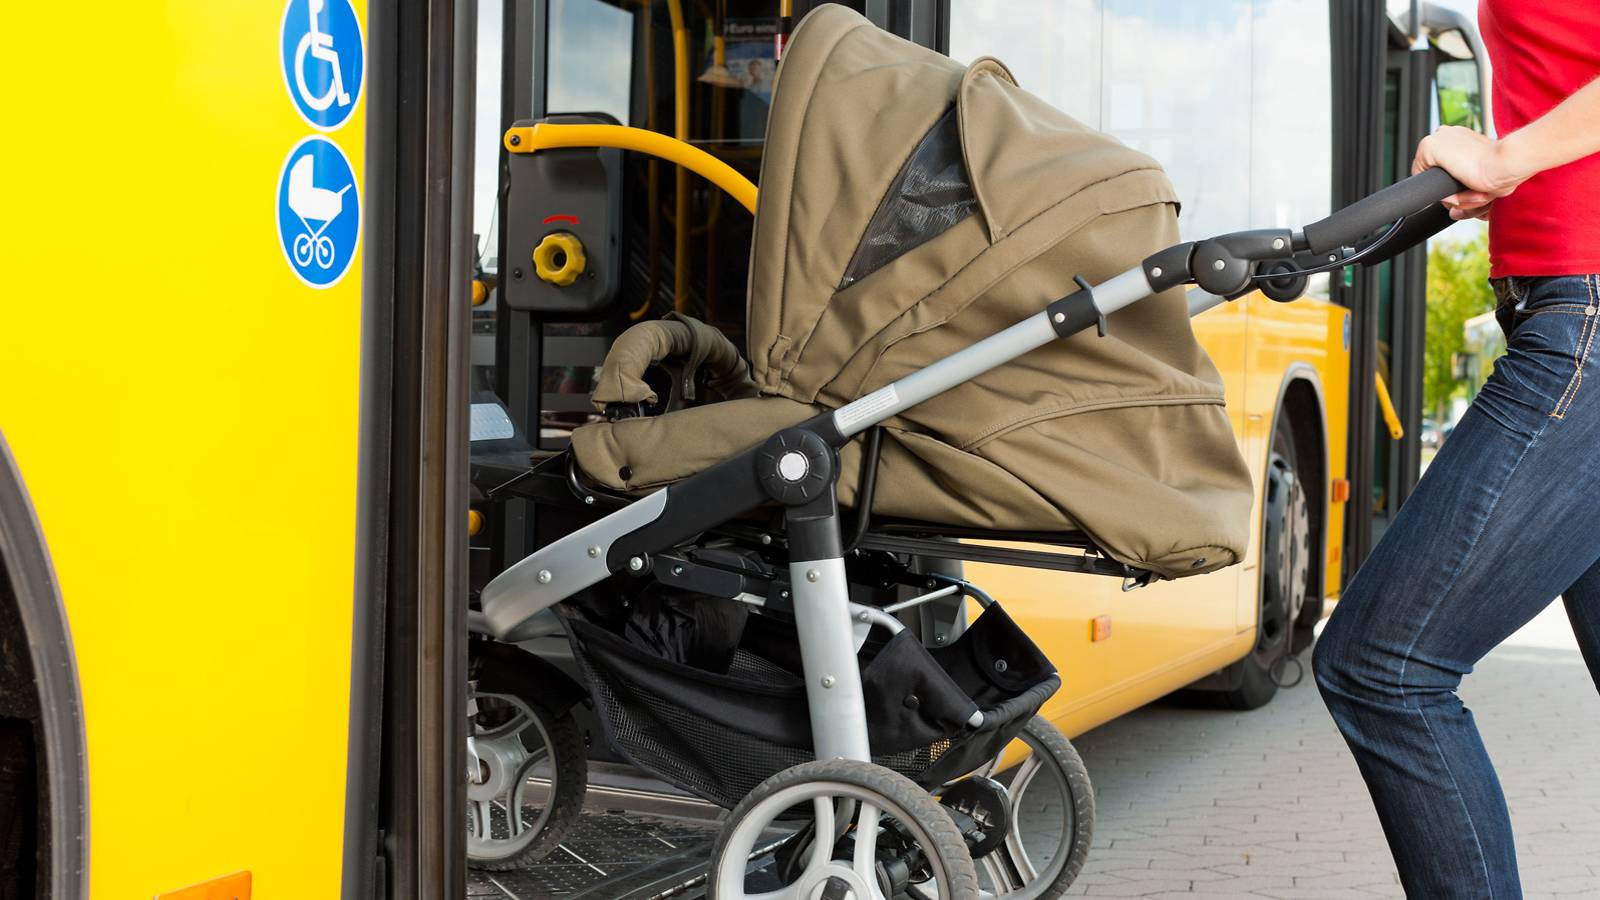 Babies---How-to-enjoy-bus-rides-with-open-strollers-1